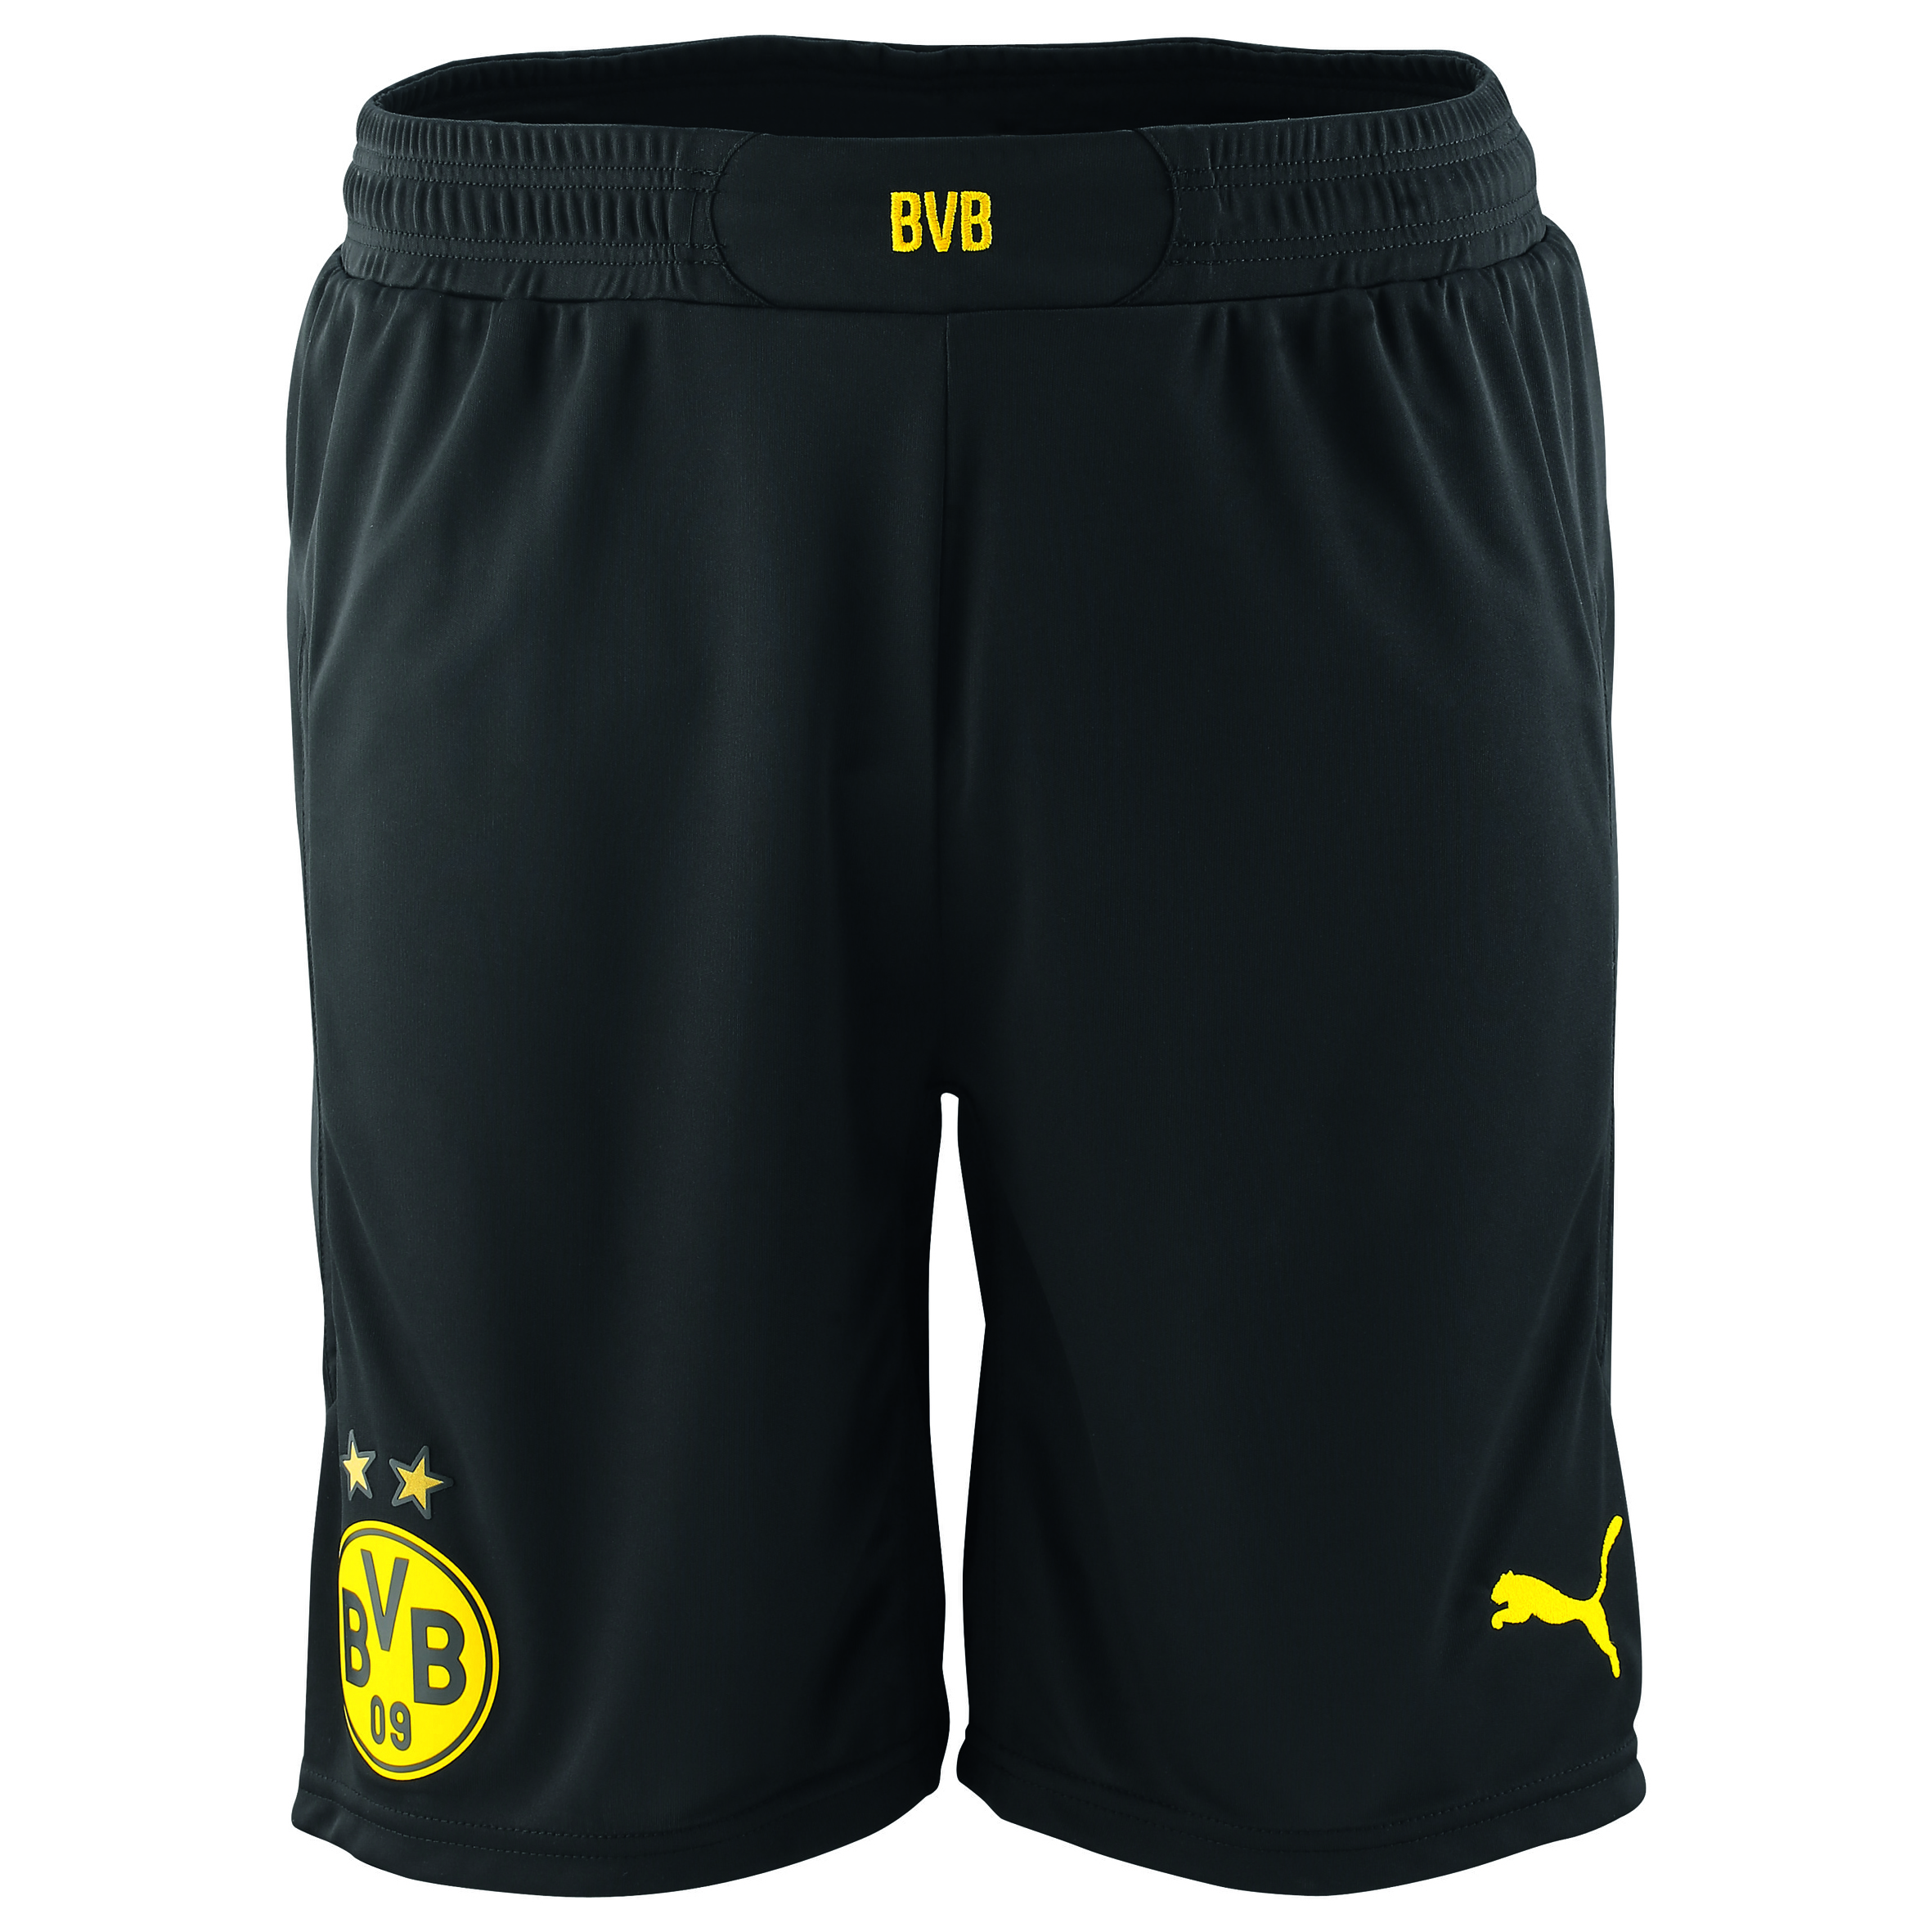 BVB Home Shorts 2014/15